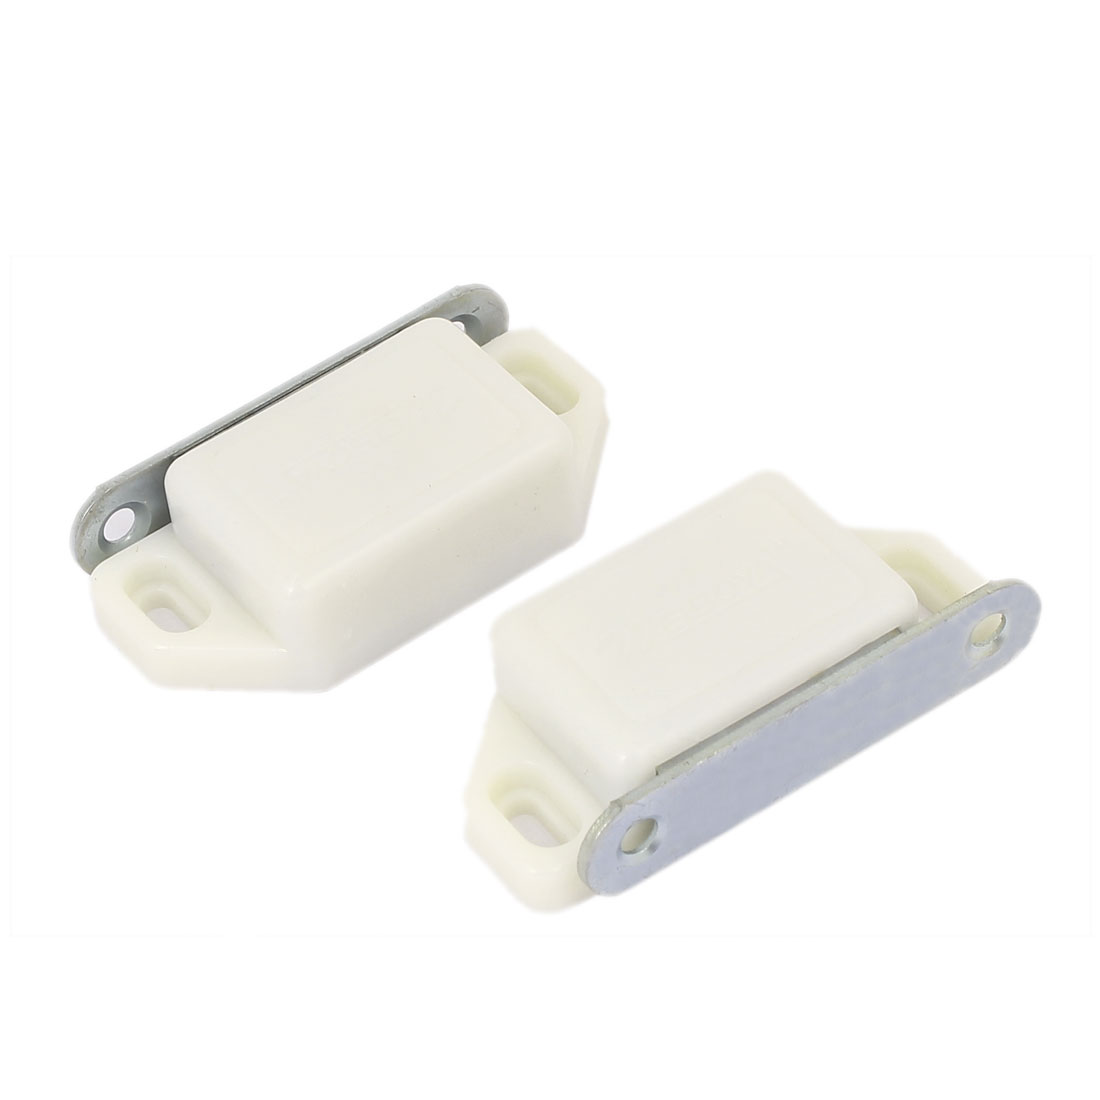 Cabinet Cupboard Plastic Shell Metal Plate Magnetic Catch Touch Latch White 57mmx27mm 2pcs